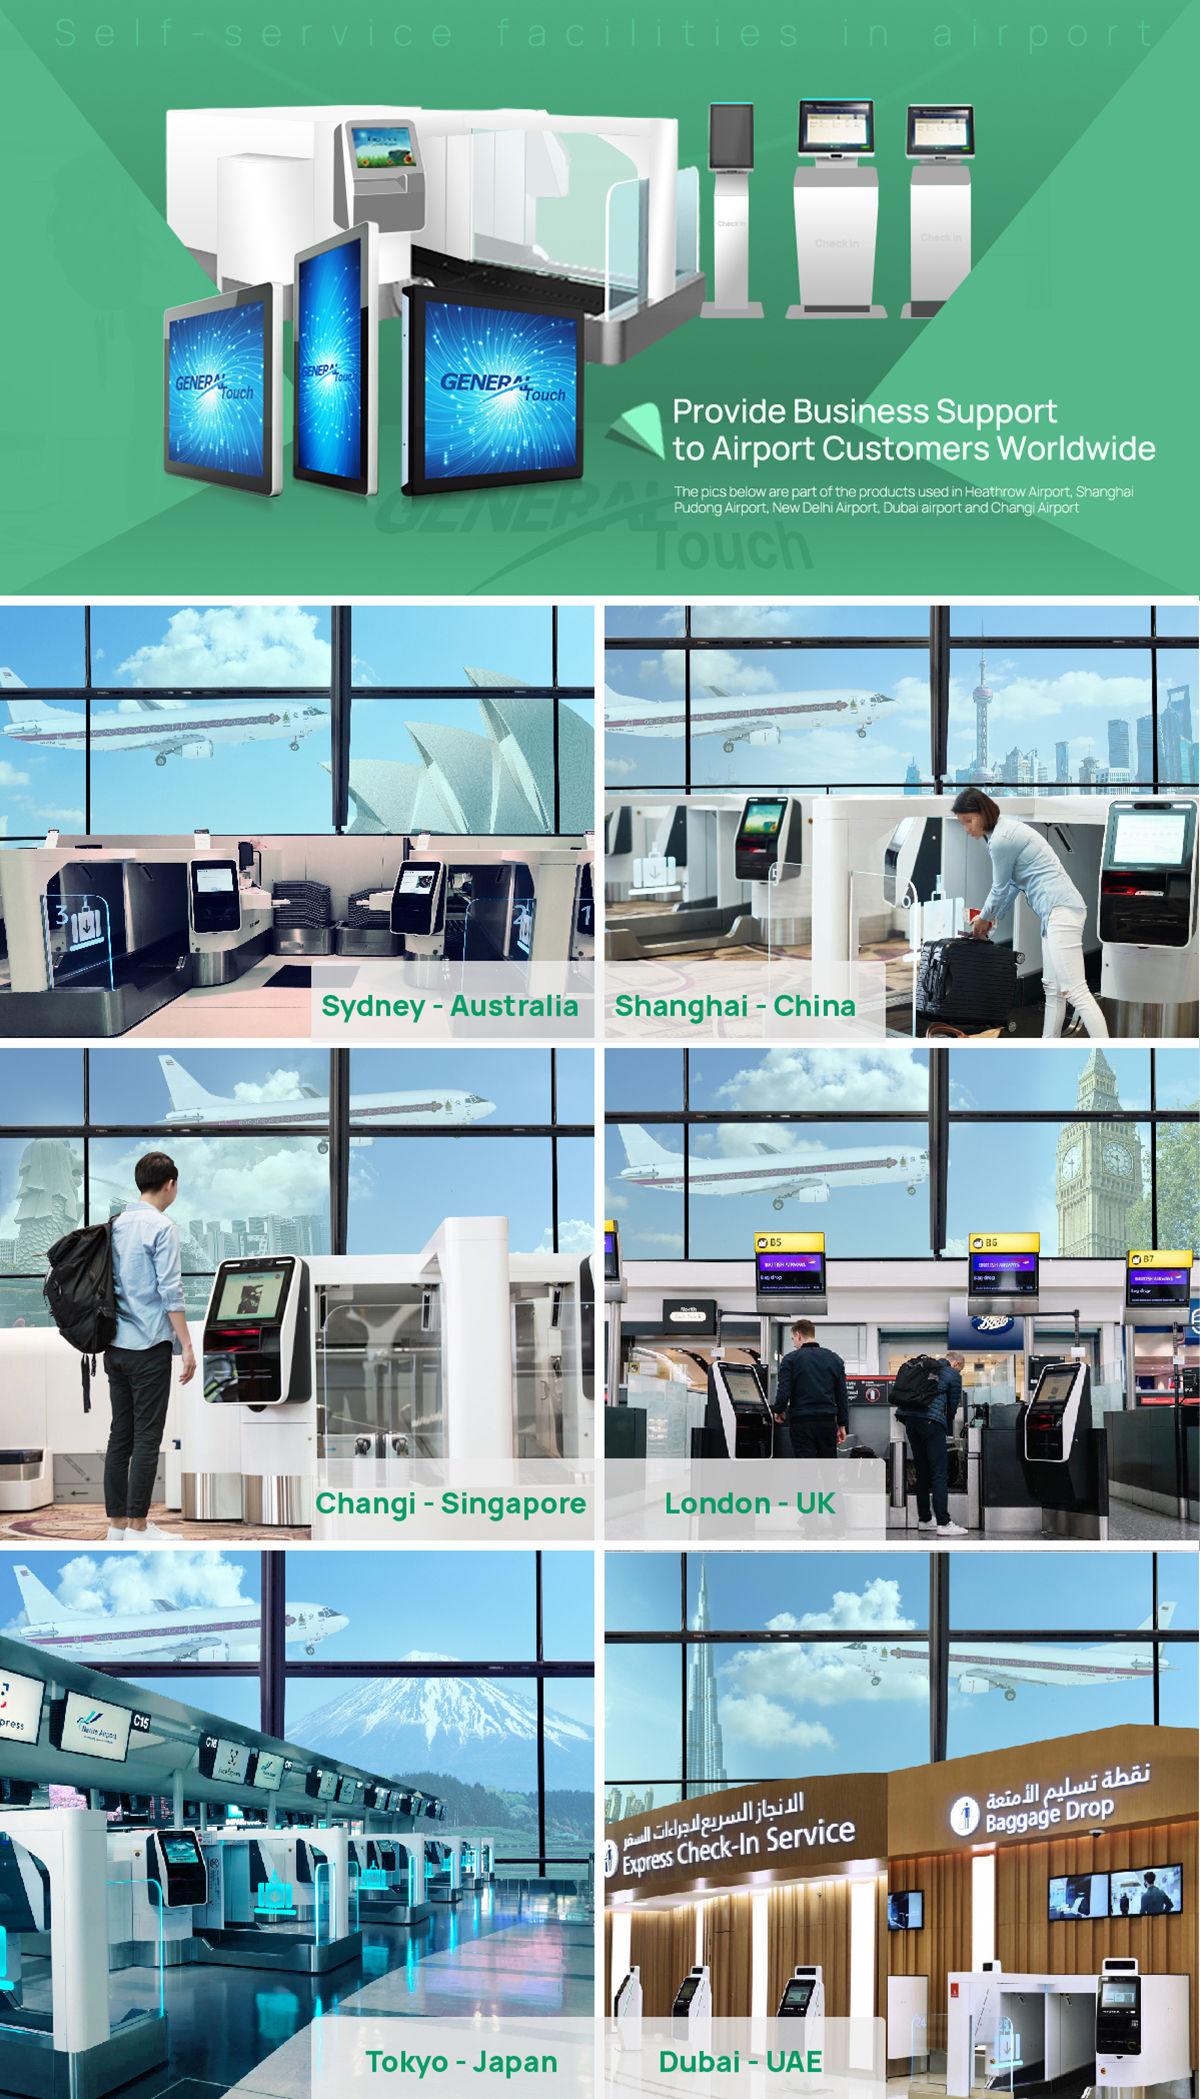 GT's touchscreen products provide business support to airport customers worldwide